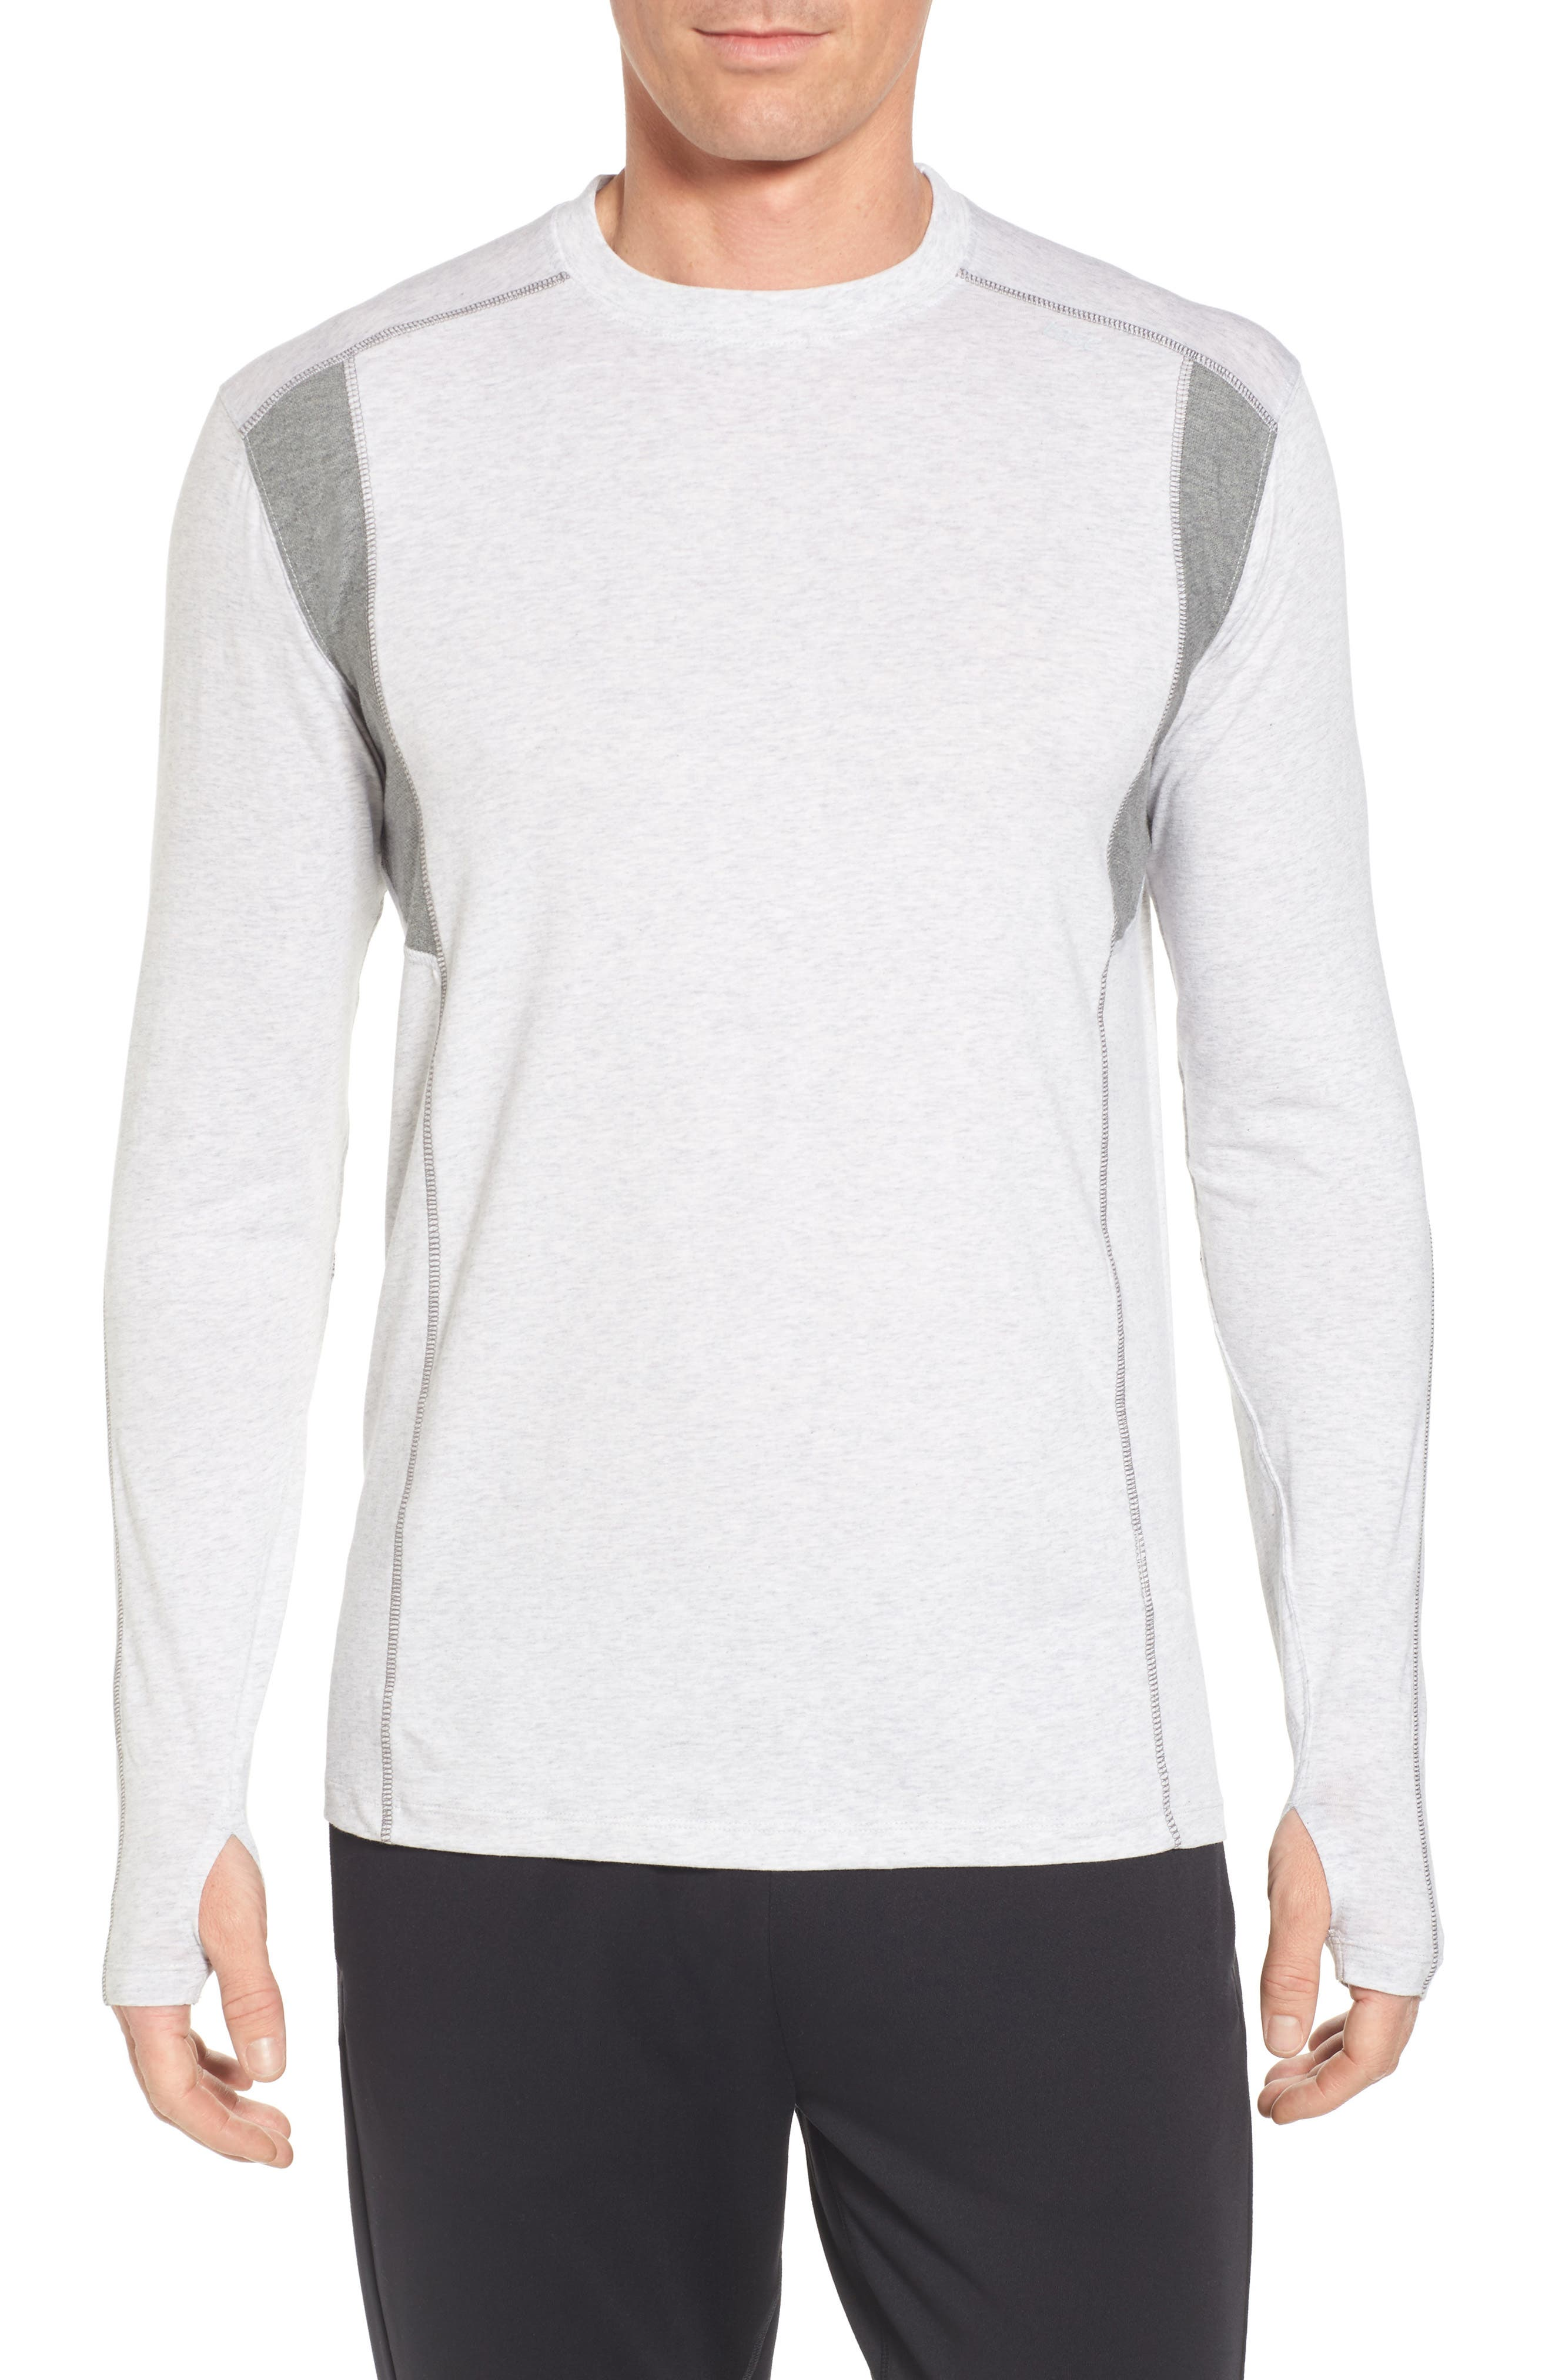 Charge Sweatshirt,                         Main,                         color, 067